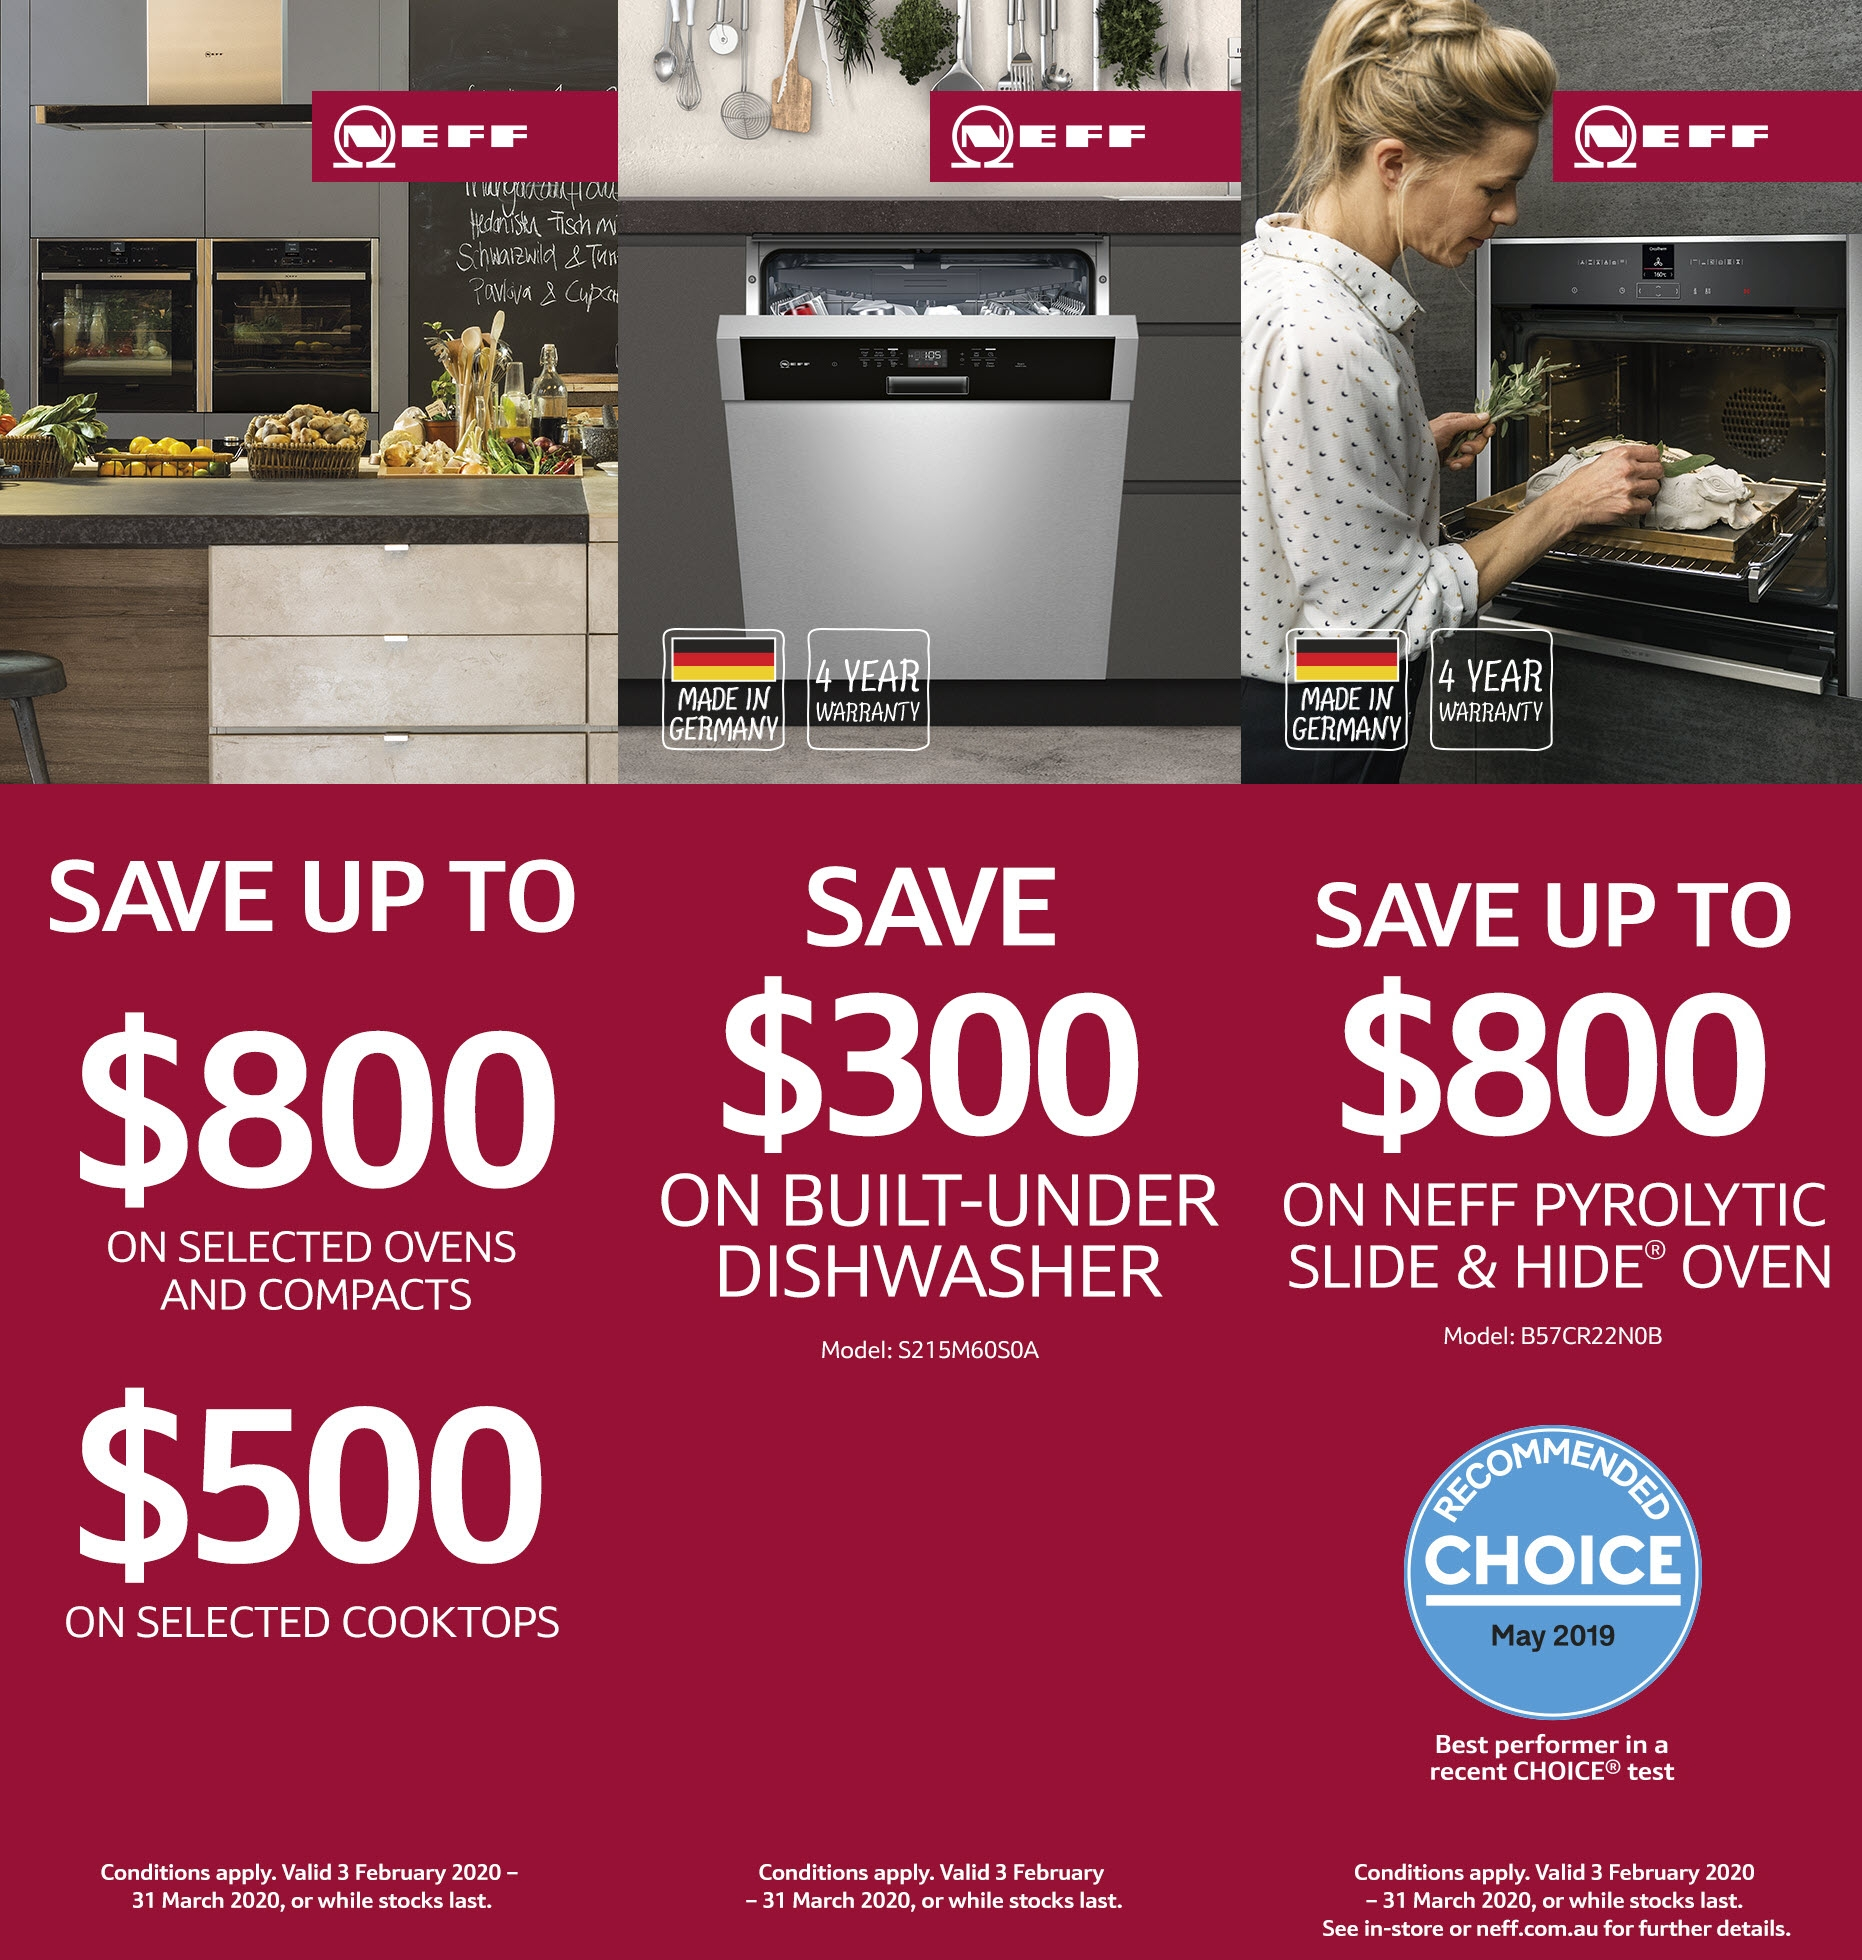 NEFF Oven Cooktop Dishwasher Promotion Feb March 2020